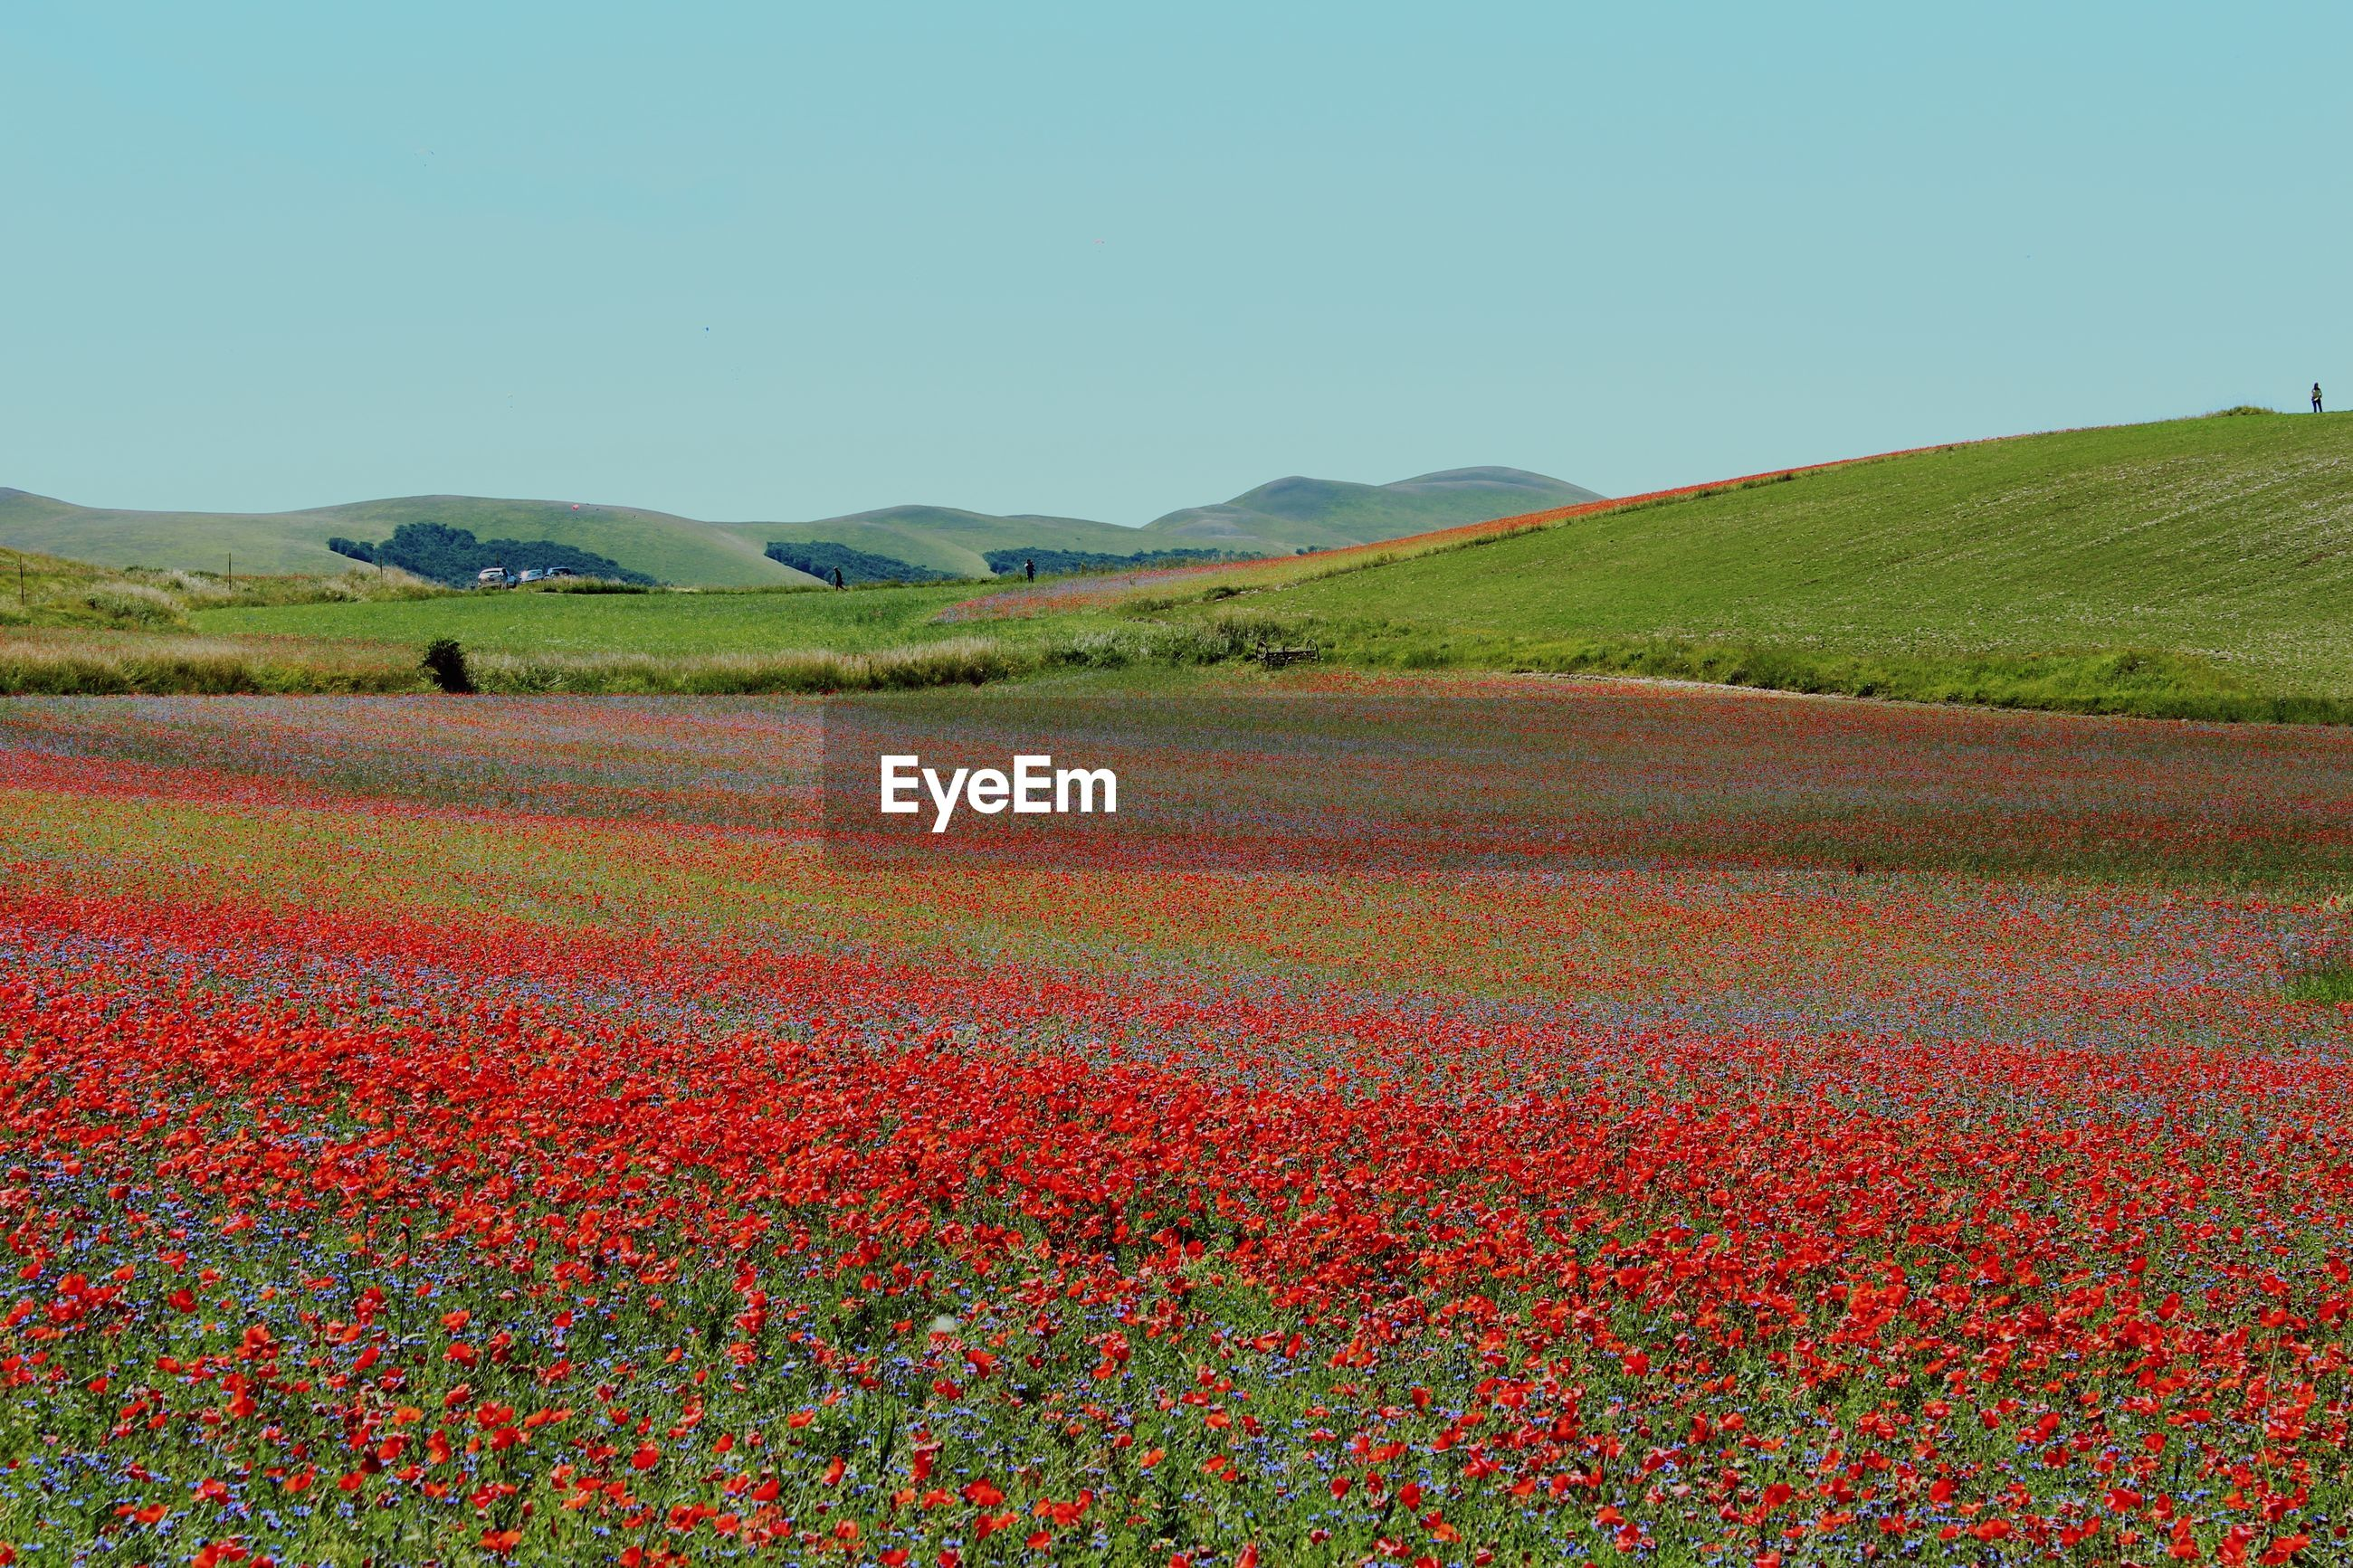 Scenic view of landscape against clear blue sky poppies flowers castelluccio